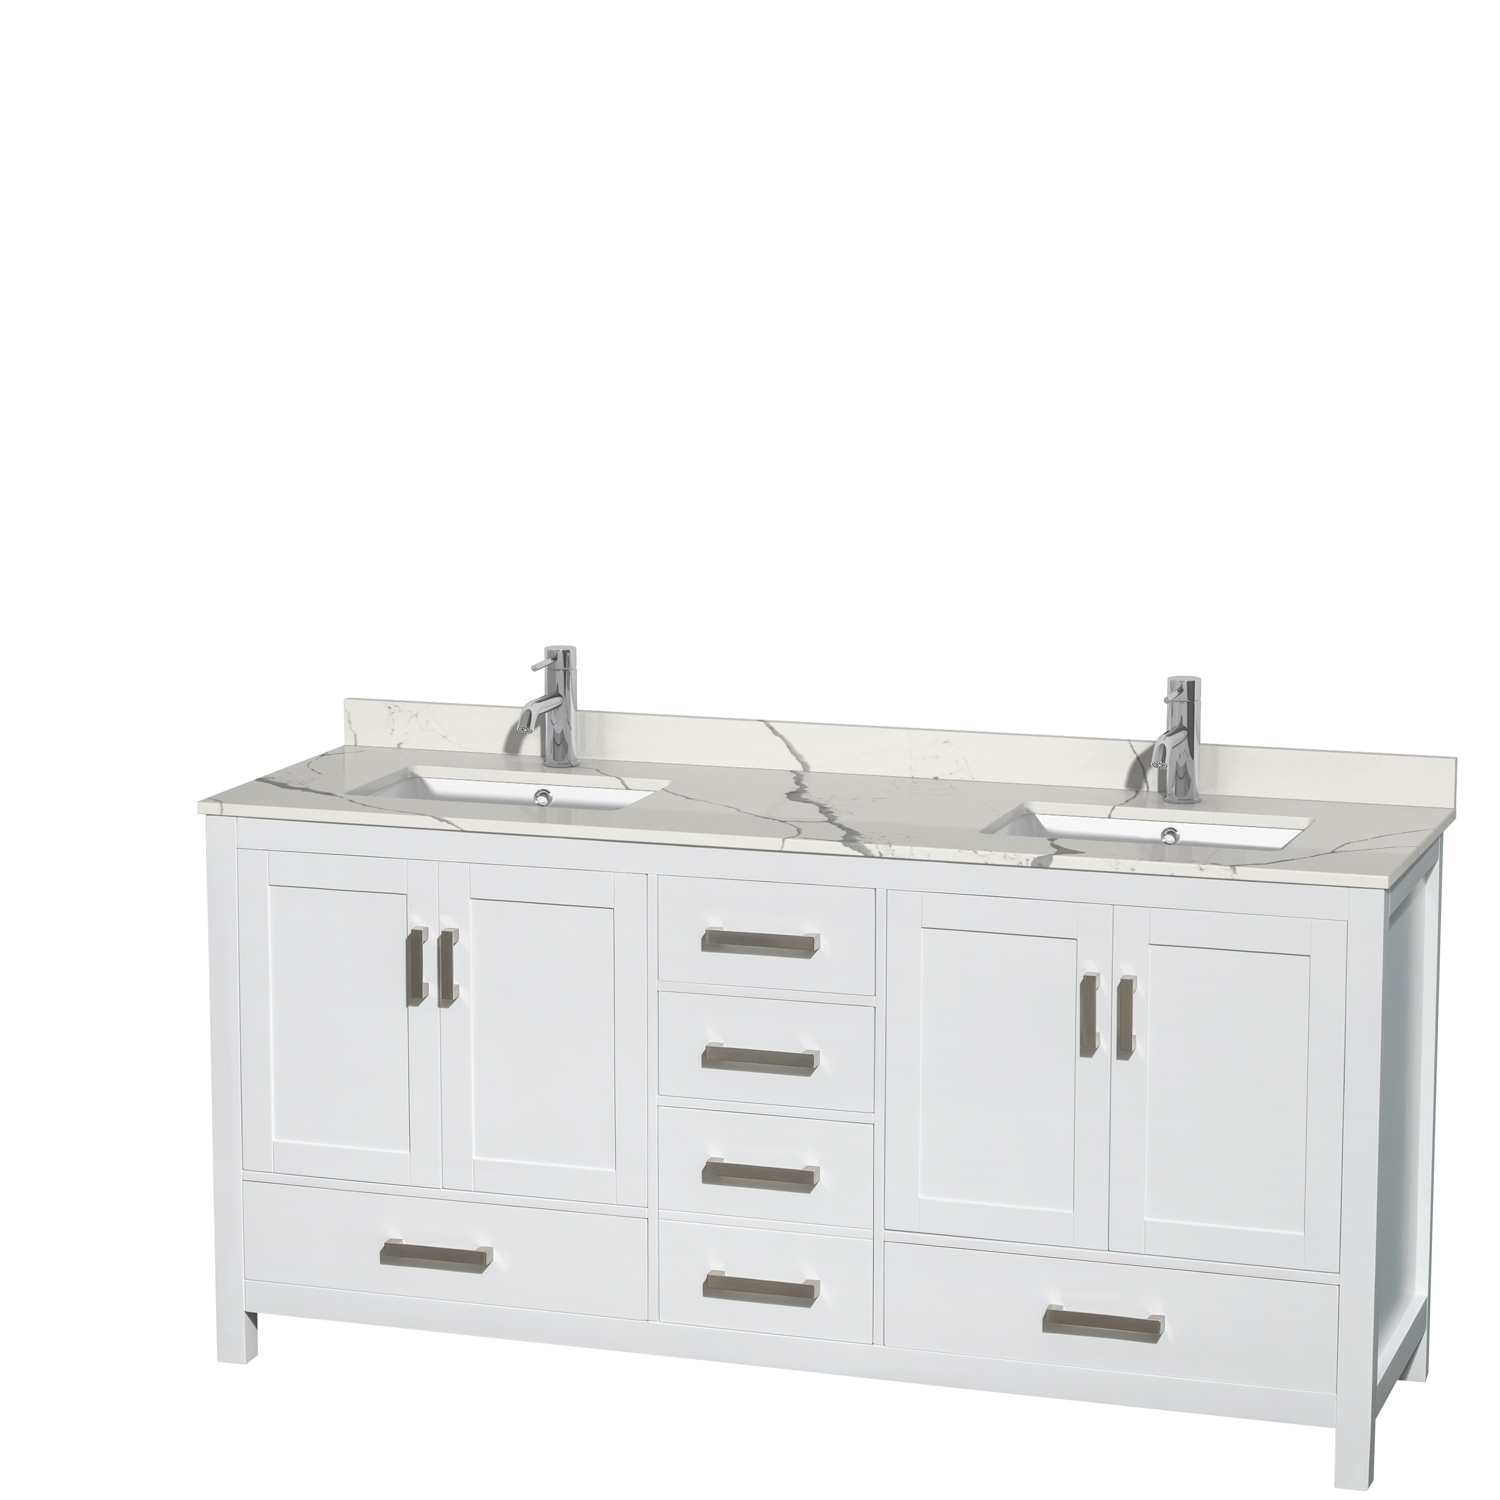 Sheffield 72 Double Bathroom Vanity By Wyndham Collection White Free Shipping Modern Bathroom